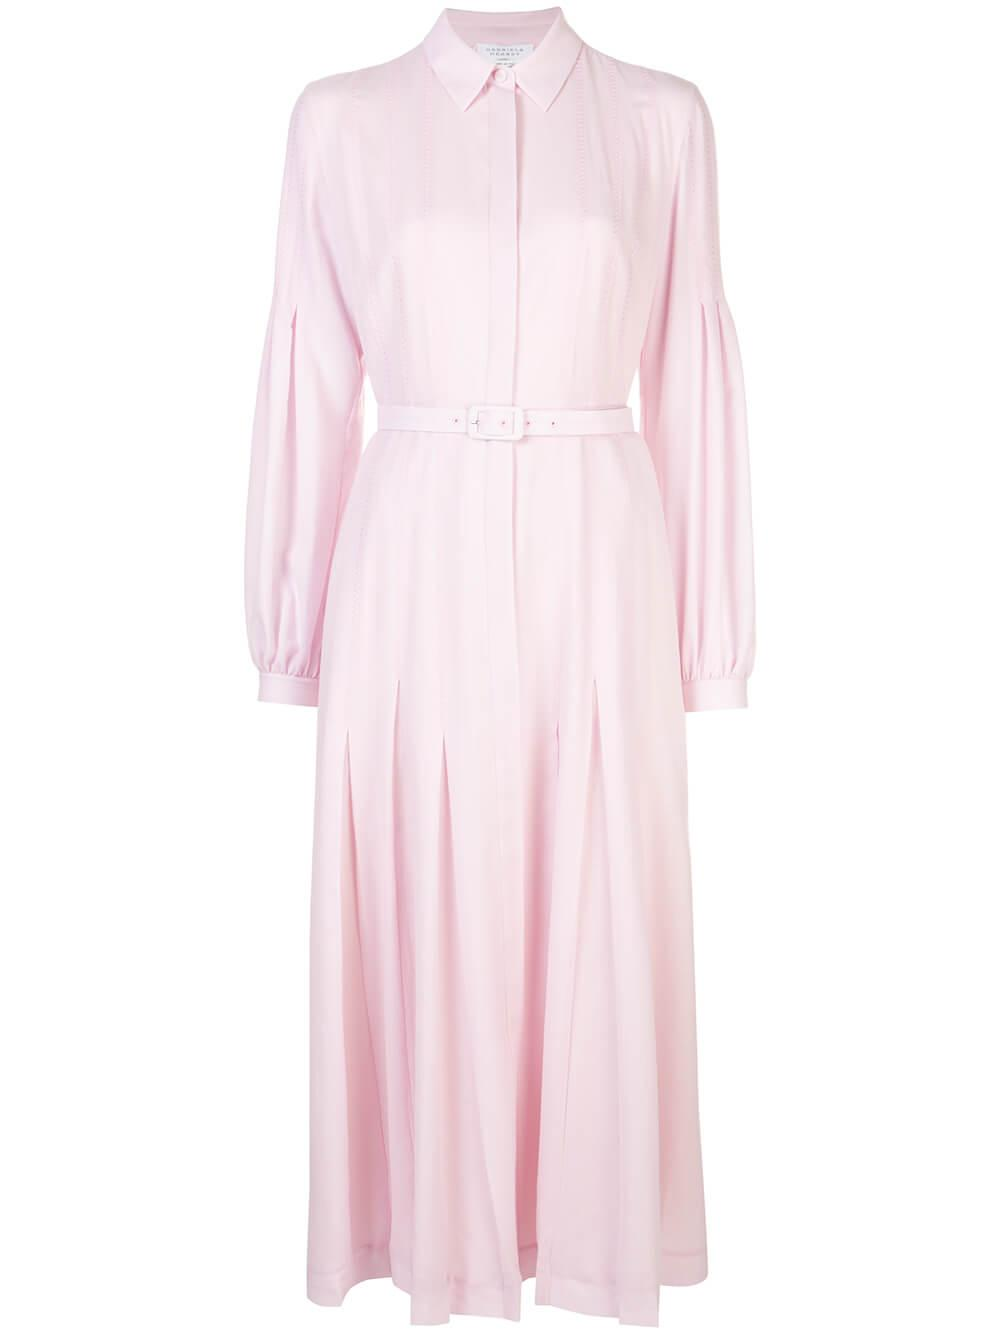 Chelsea Long Sleeve Cashmere Gauze Dress